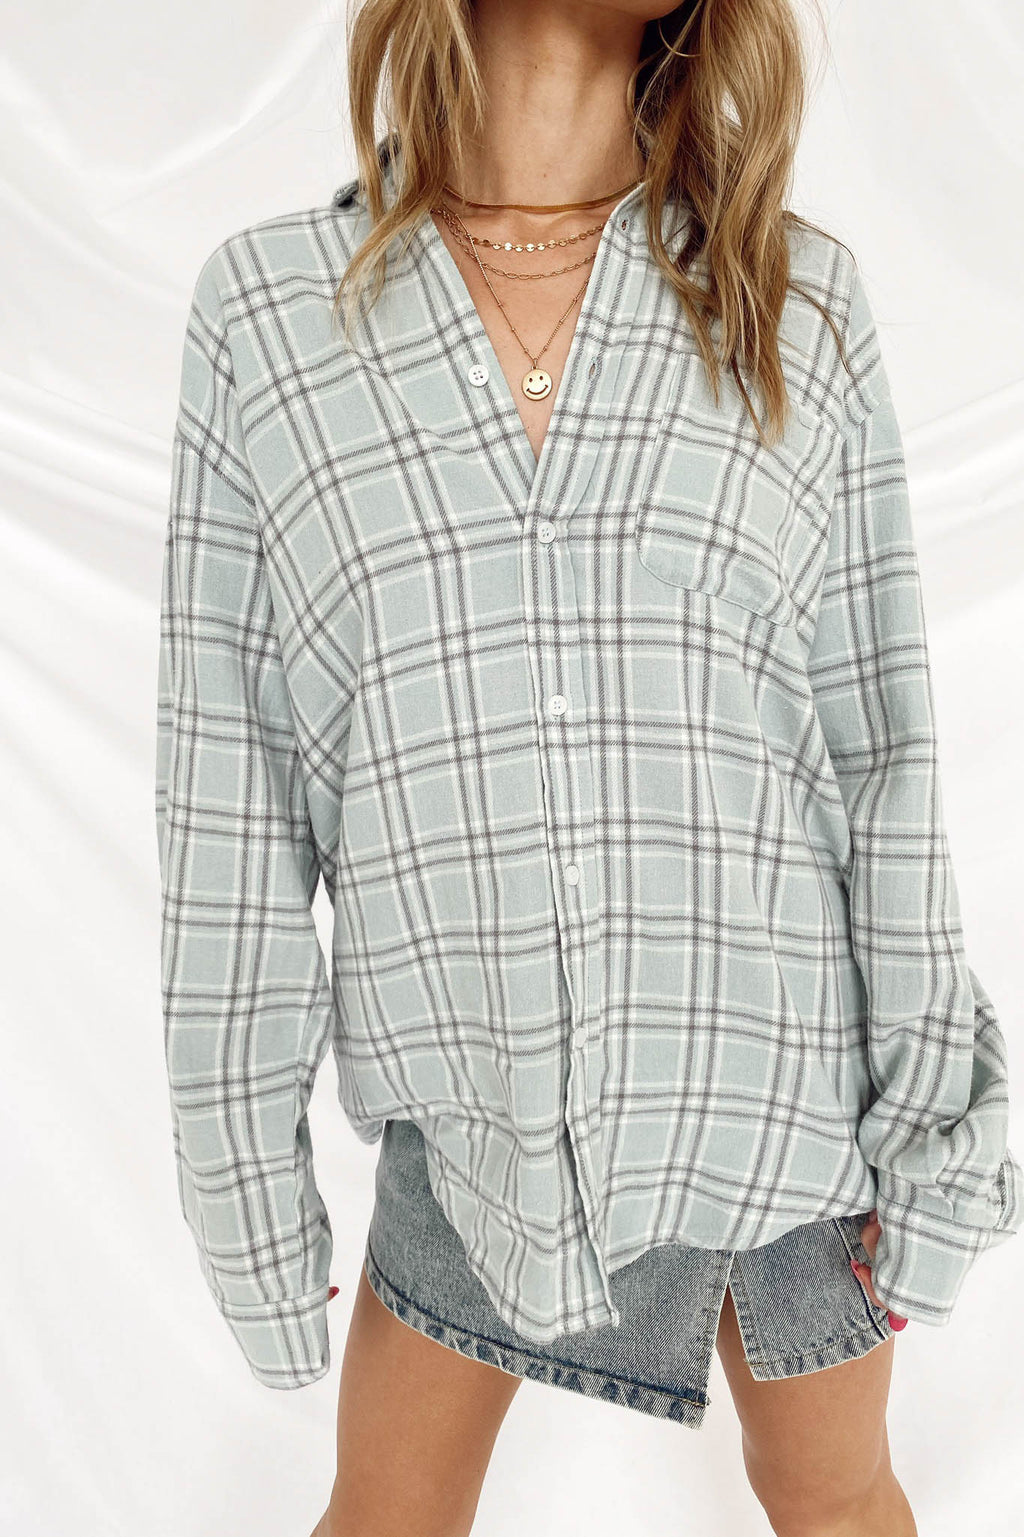 Mind Over Matter Plaid Top